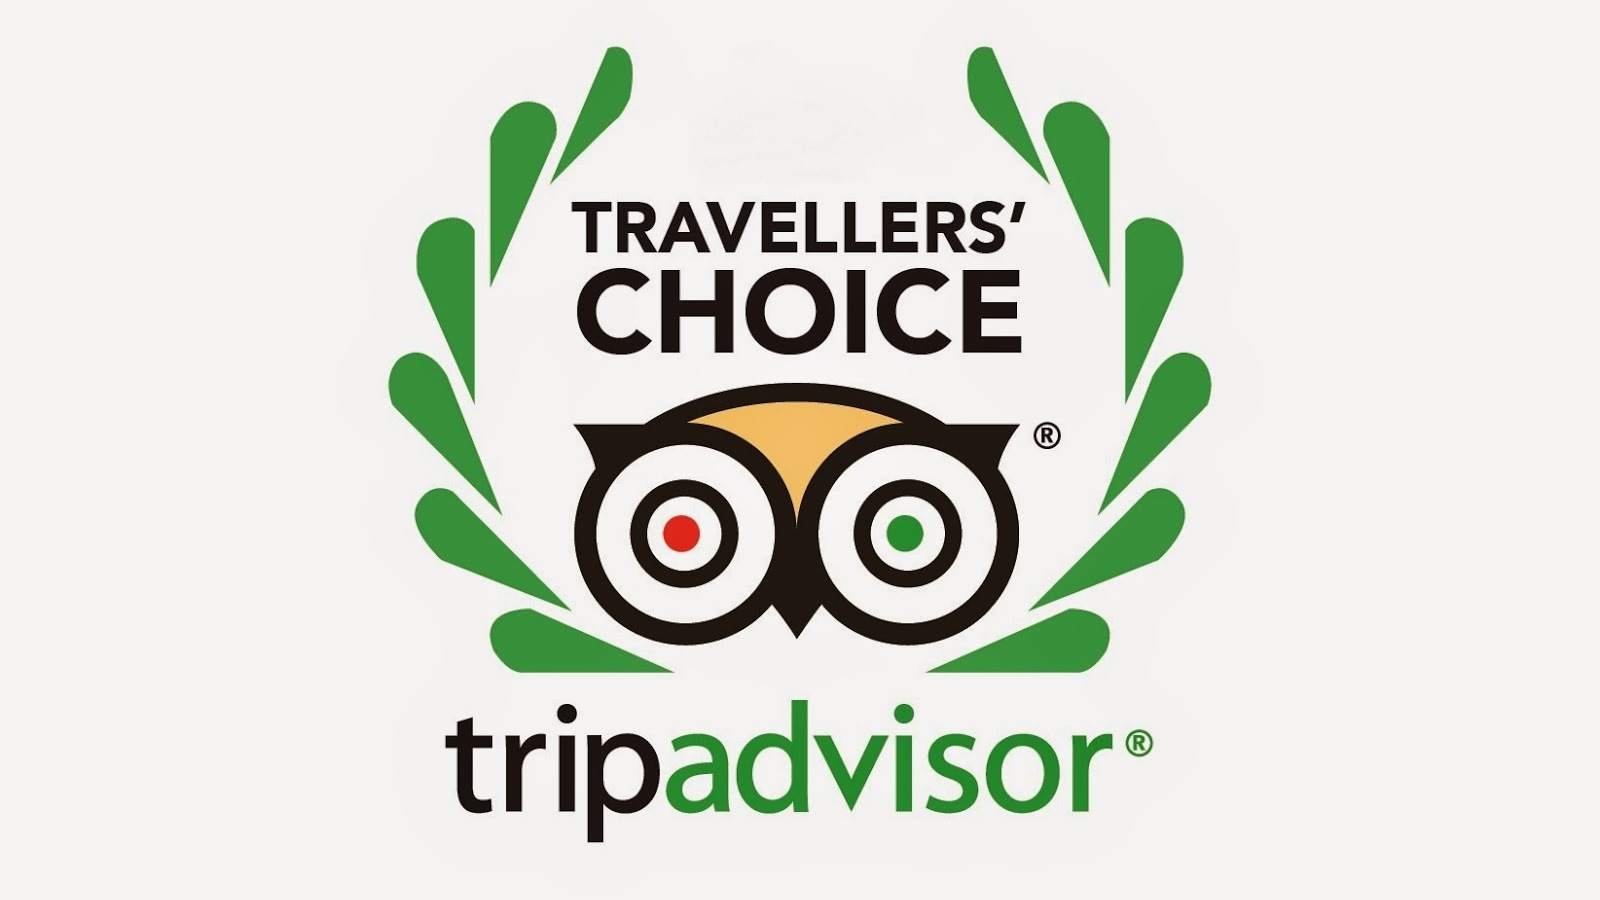 Atlantida Mar Hotel is a 2019 Travellers' Choice Hotel Winner!